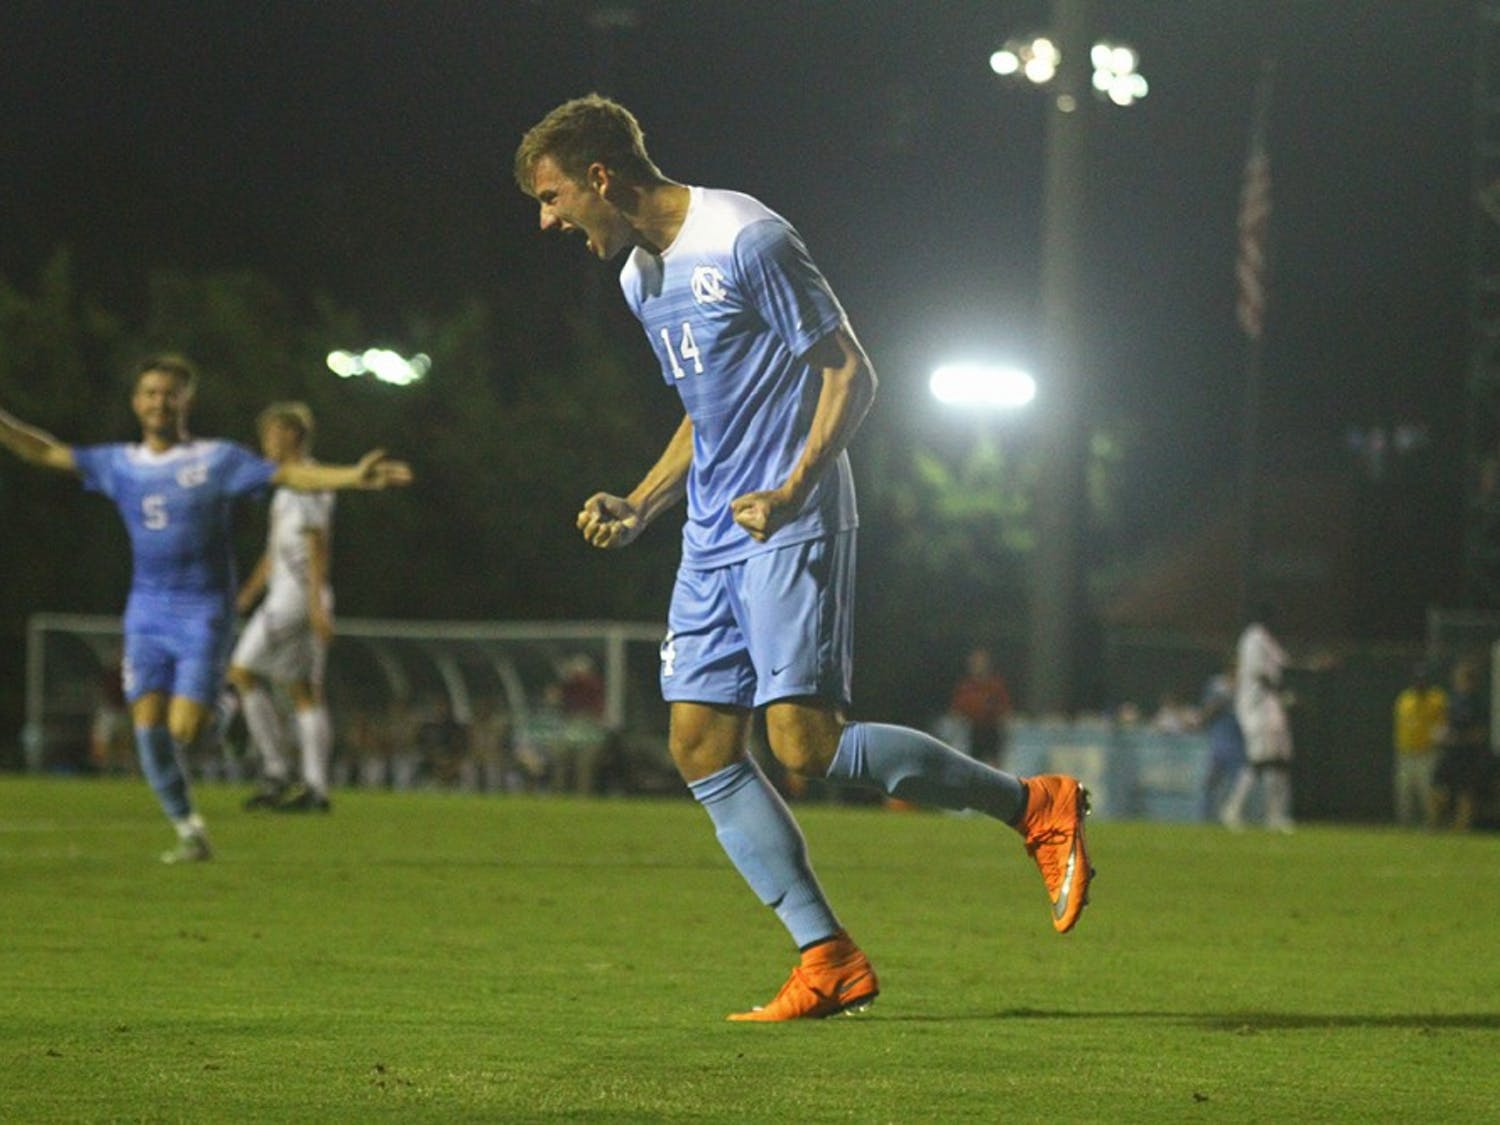 The Tar Heels defeated Boston College 5-0 Friday evening at Fetzer Field.